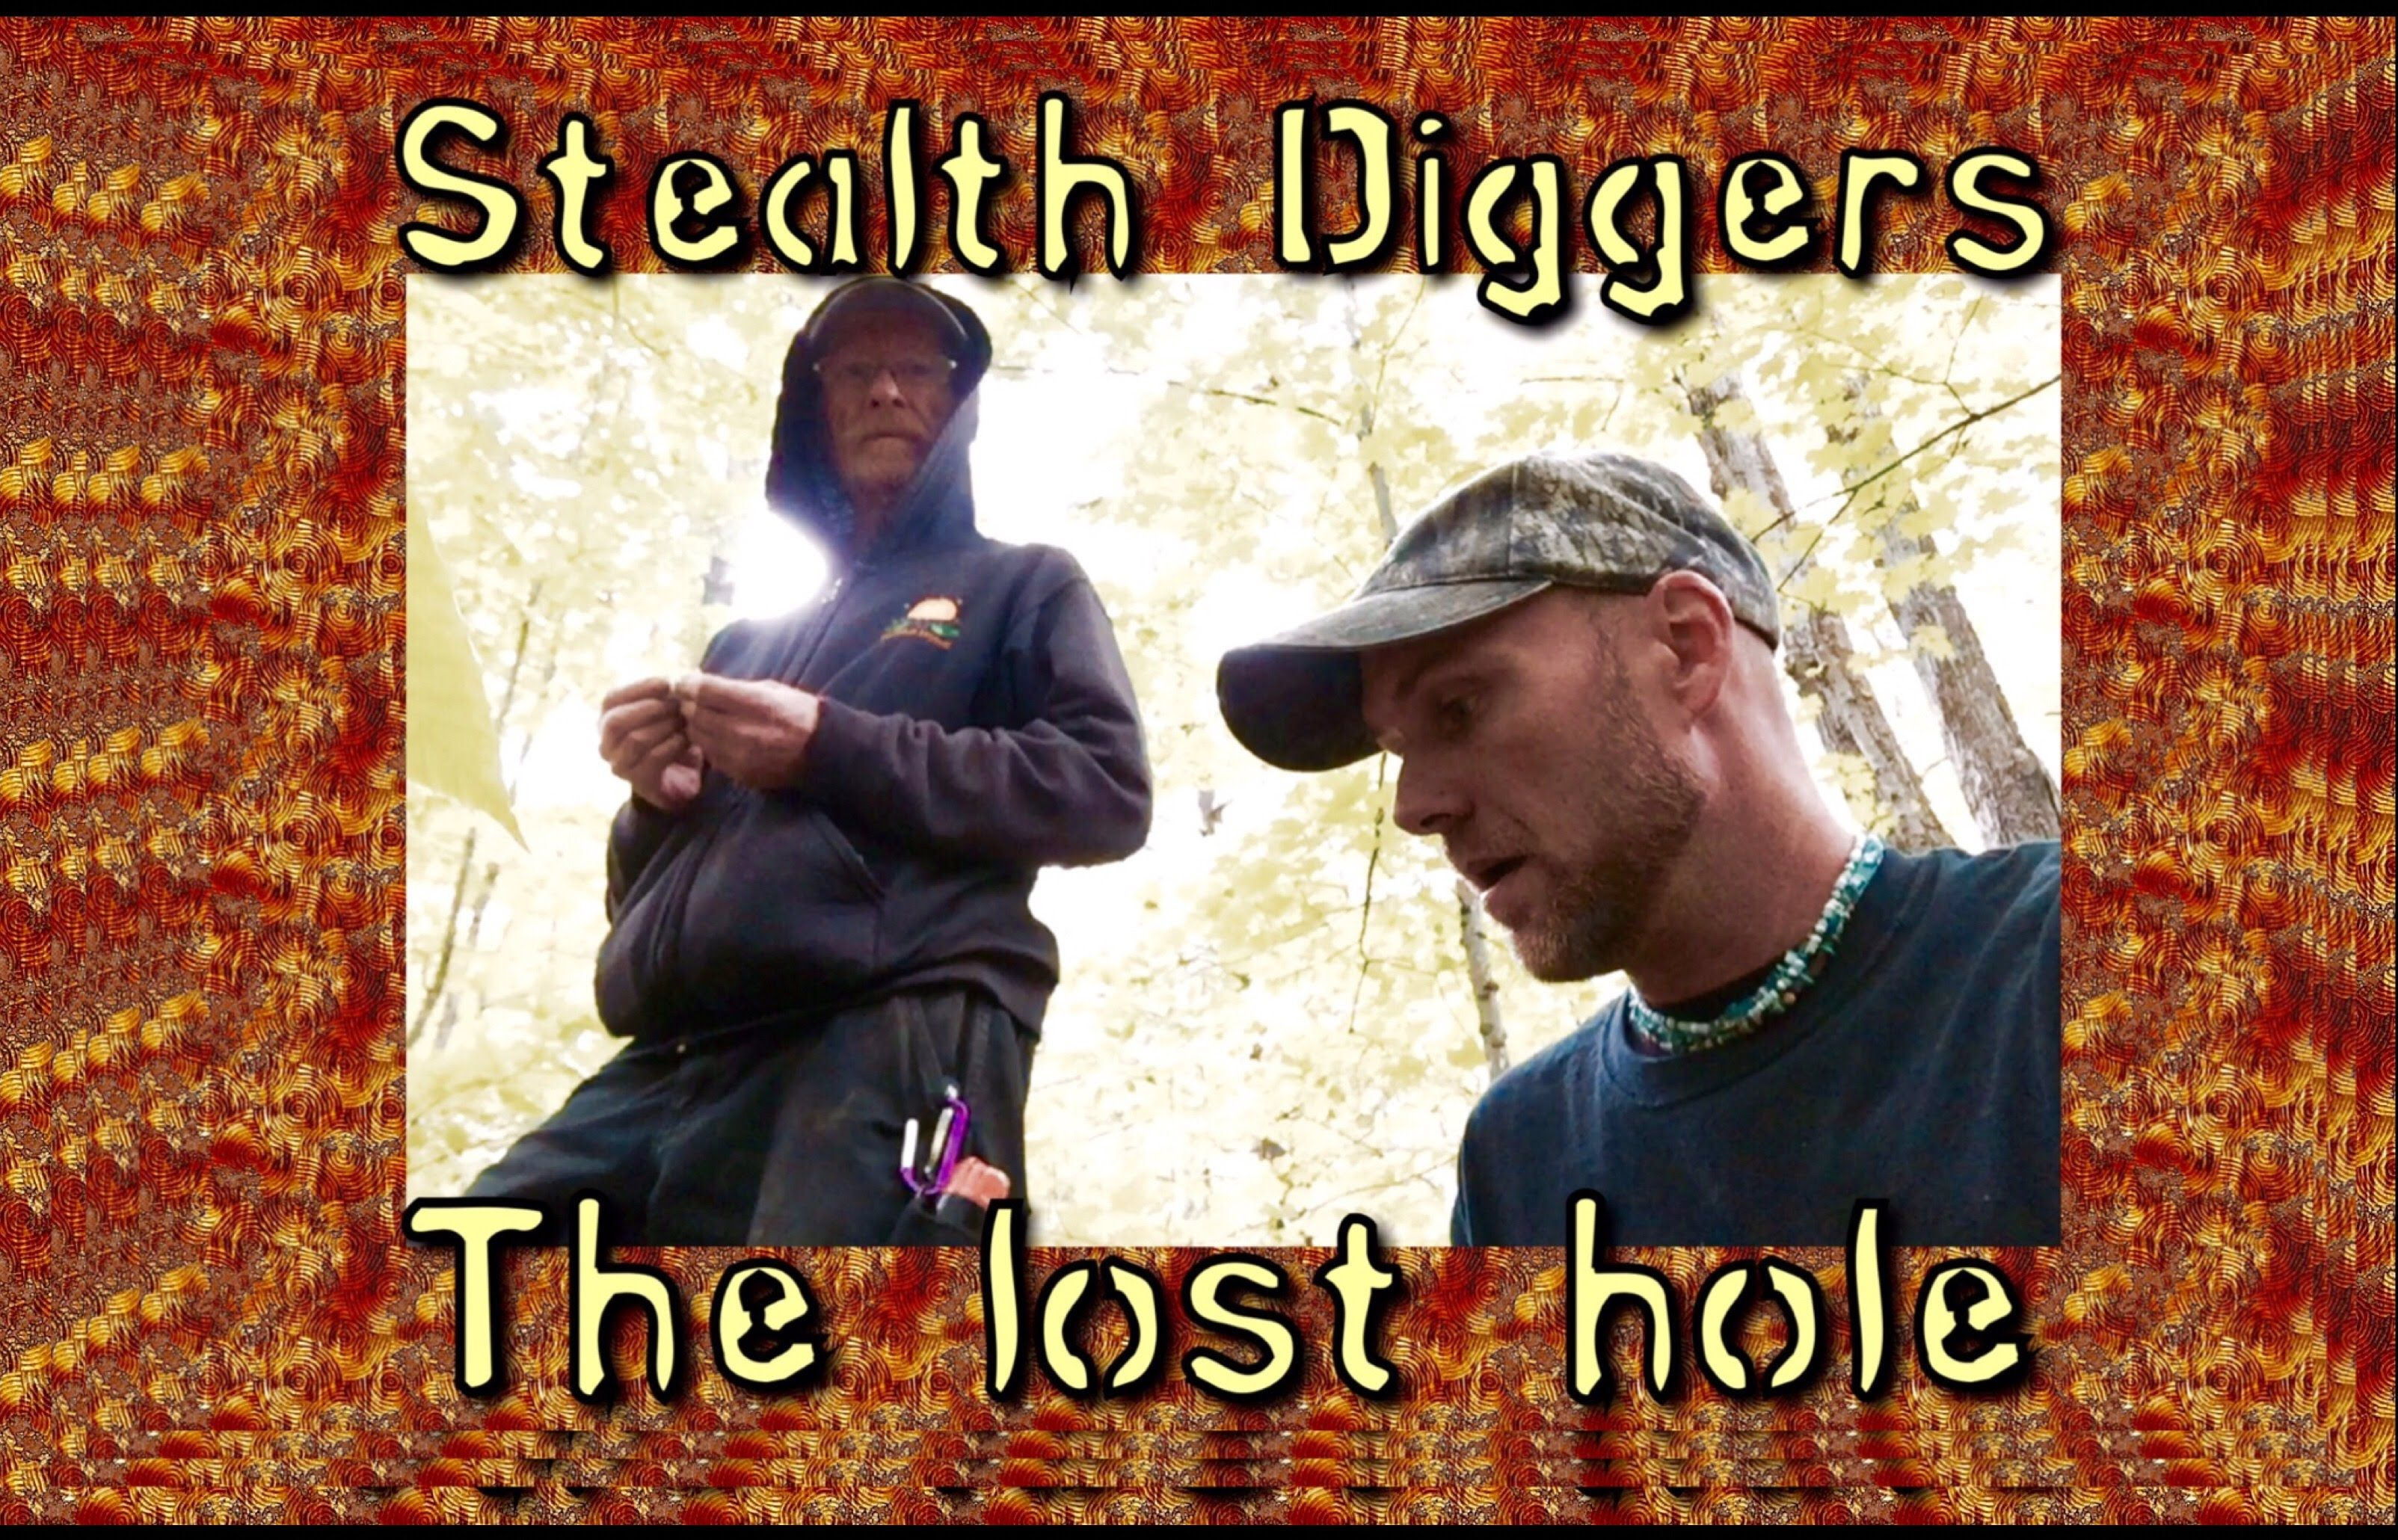 #118 The lost hole - NH metal detecting colonial cellar holes relics coi...